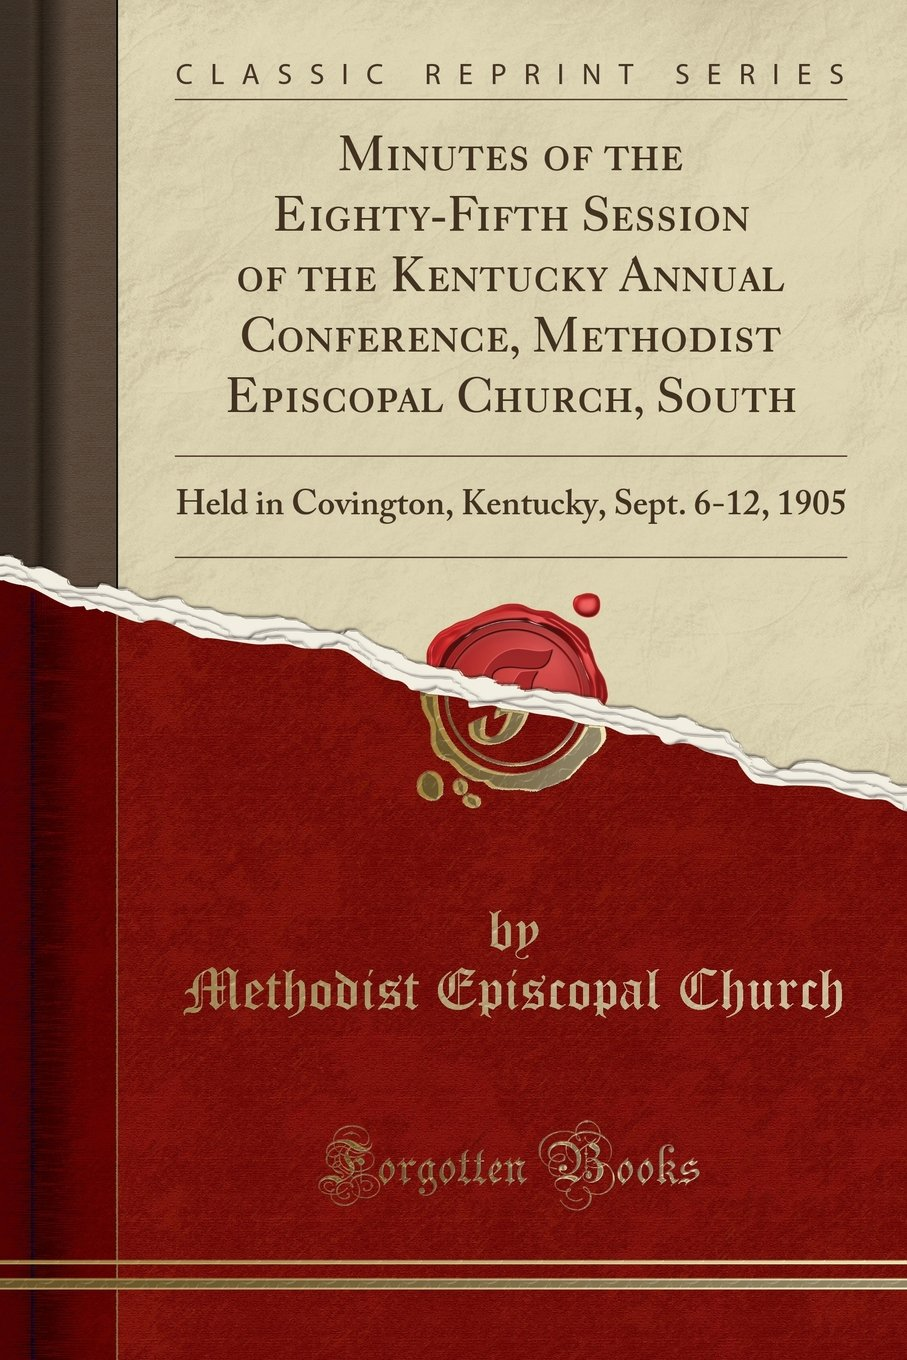 Minutes of the Eighty-Fifth Session of the Kentucky Annual Conference, Methodist Episcopal Church, South: Held in Covington, Kentucky, Sept. 6-12, 1905 (Classic Reprint) ebook